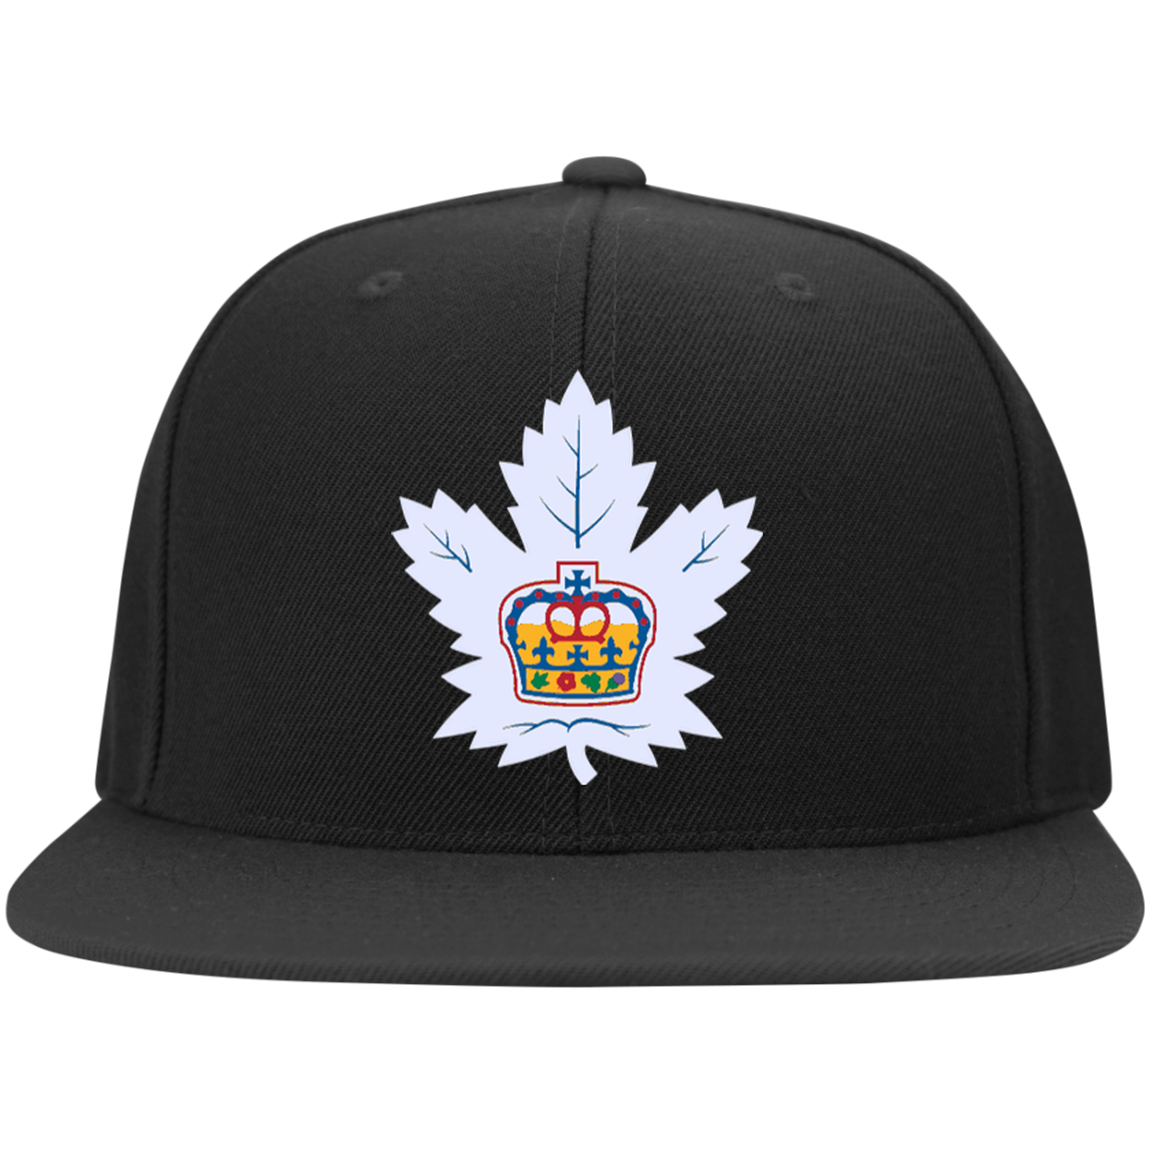 Toronto Marlies Flat Bill High-Profile Snapback Hat – ahlstore.com 41b707343aa9